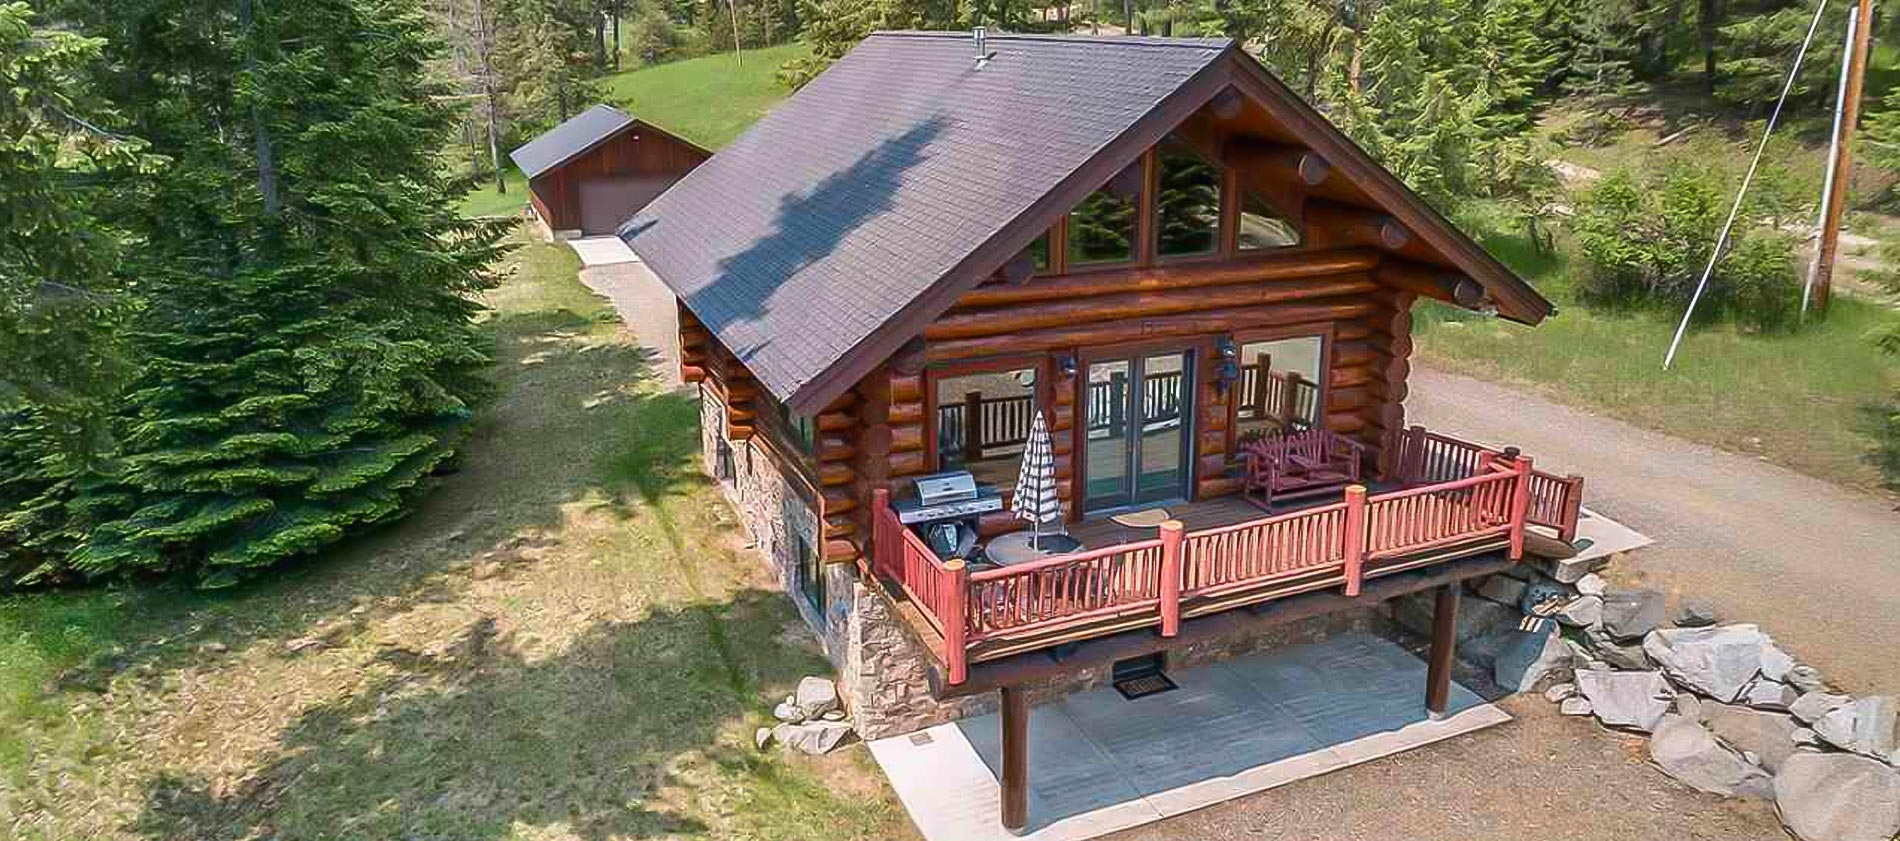 Beautiful custom log home with dry stack native rock, resting by a cedar adorned stream